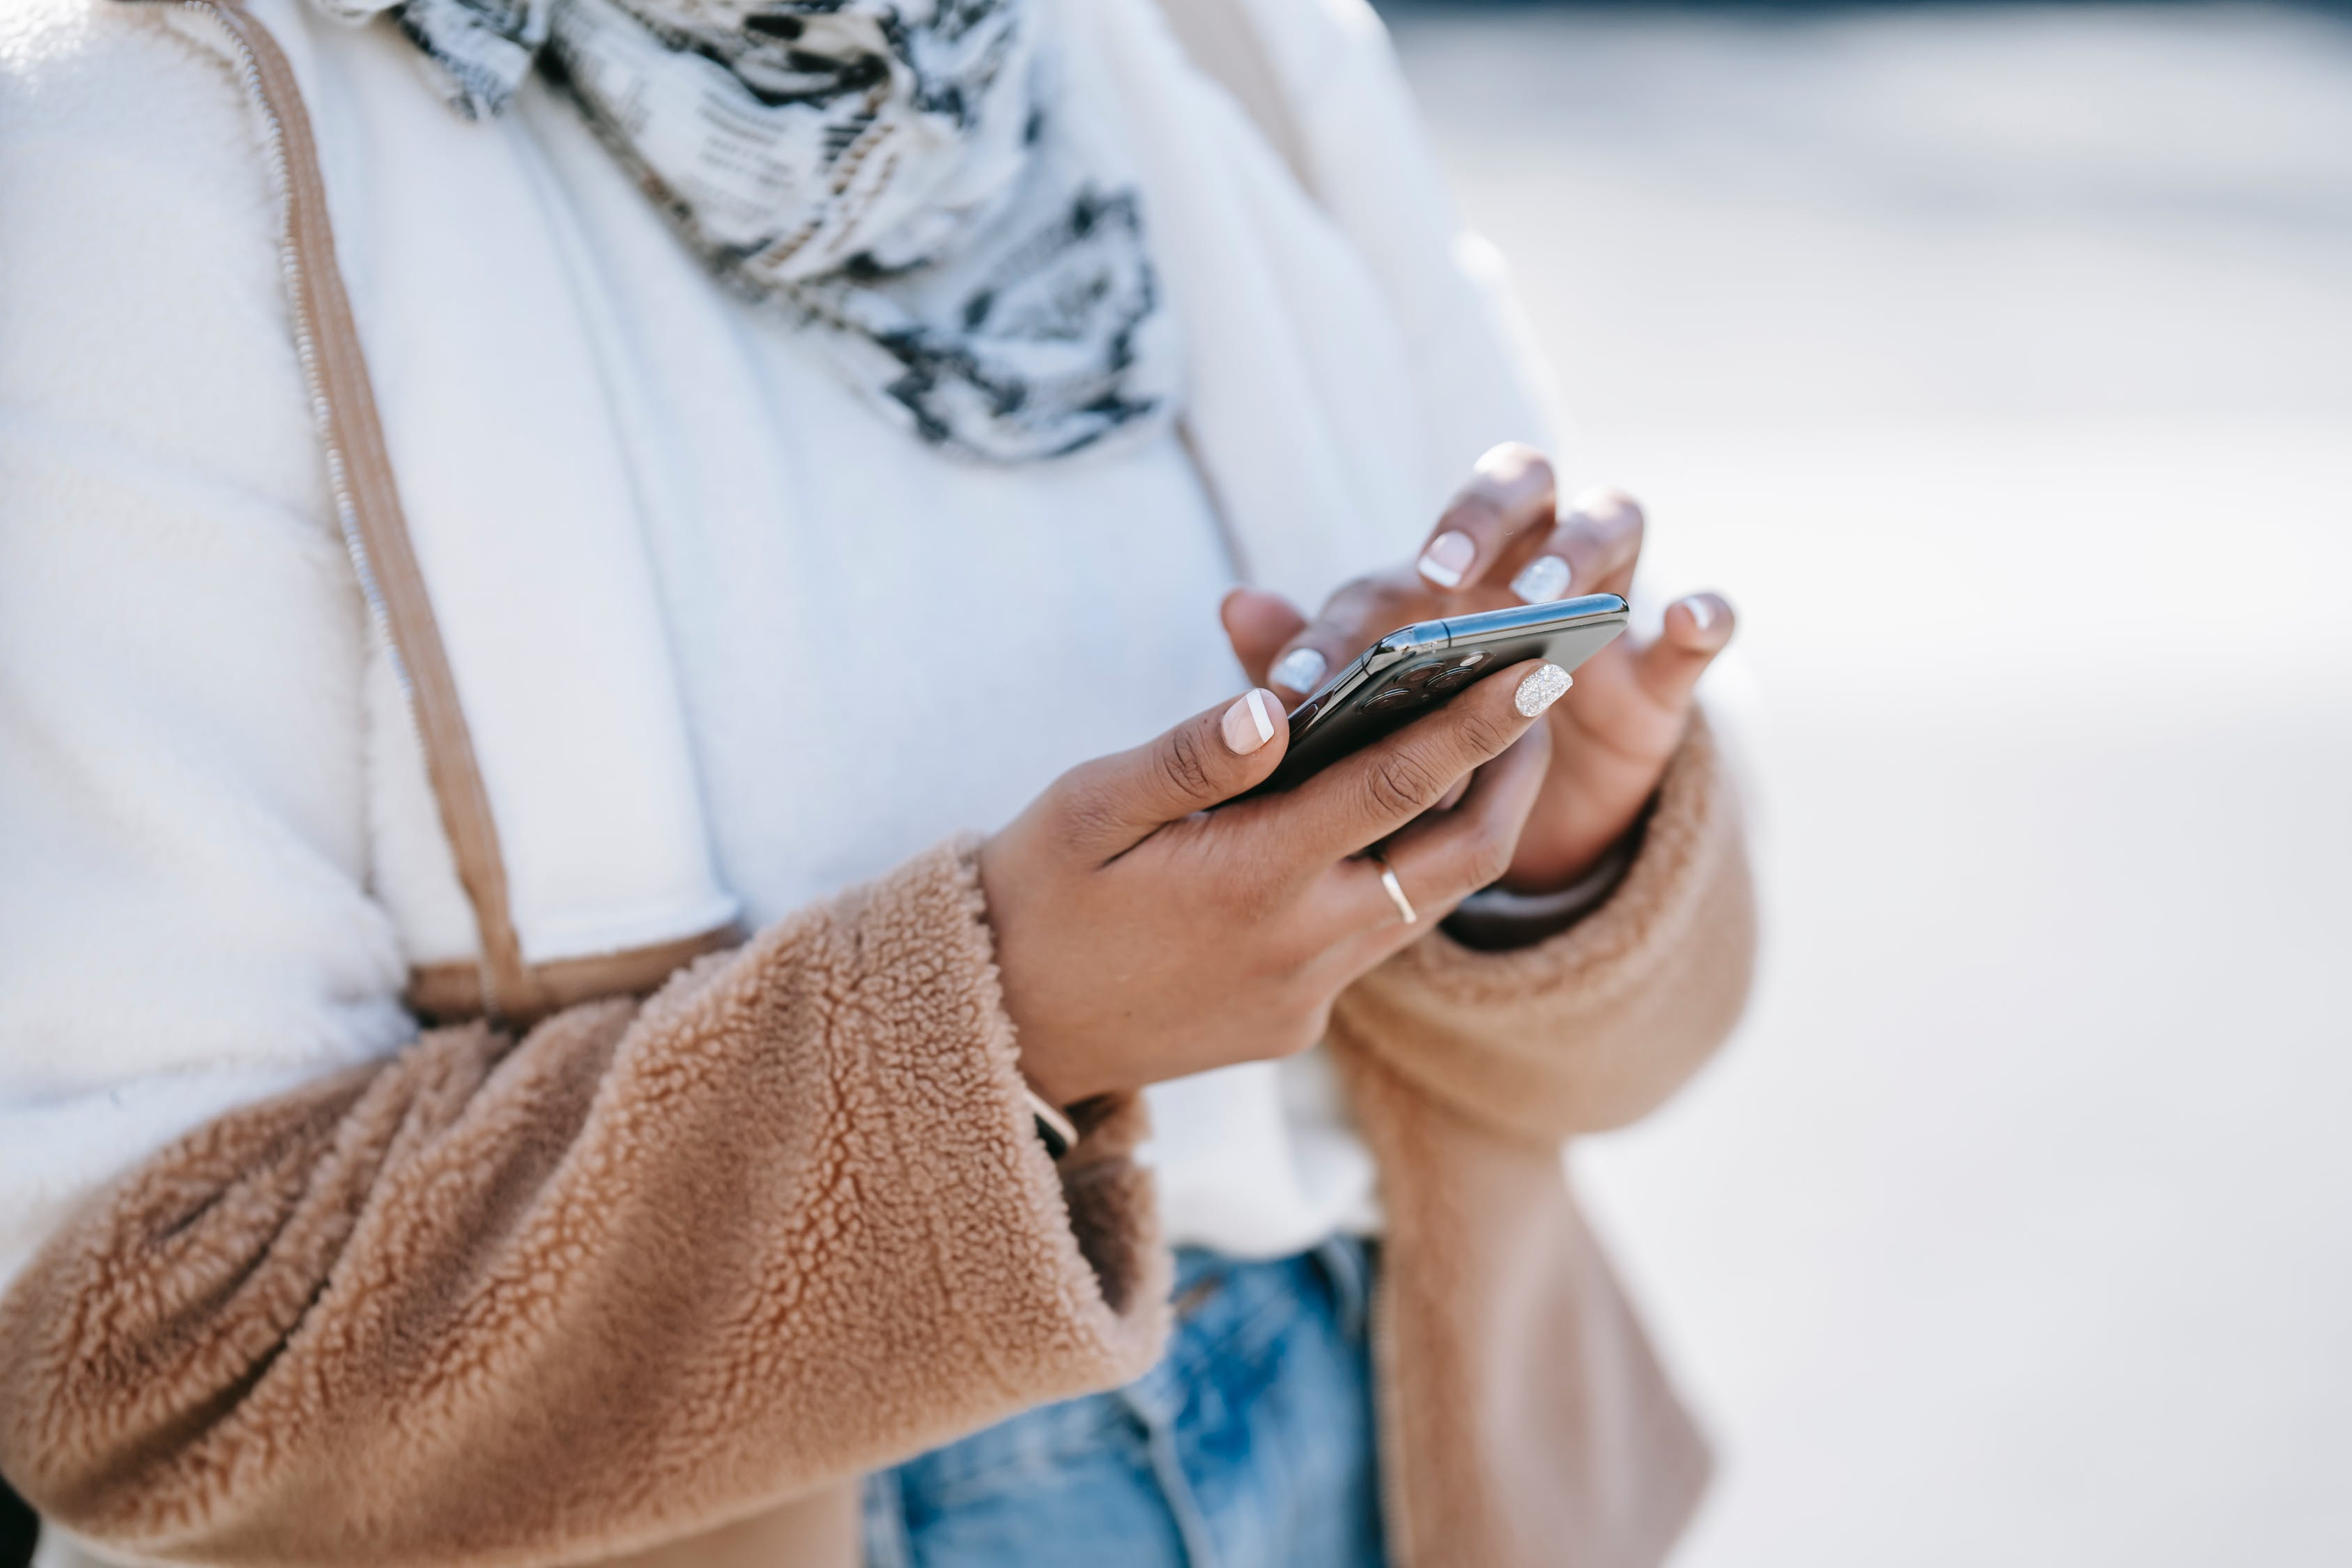 A close up on a woman using a smartphone. Photo used courtesy of Pexels.com